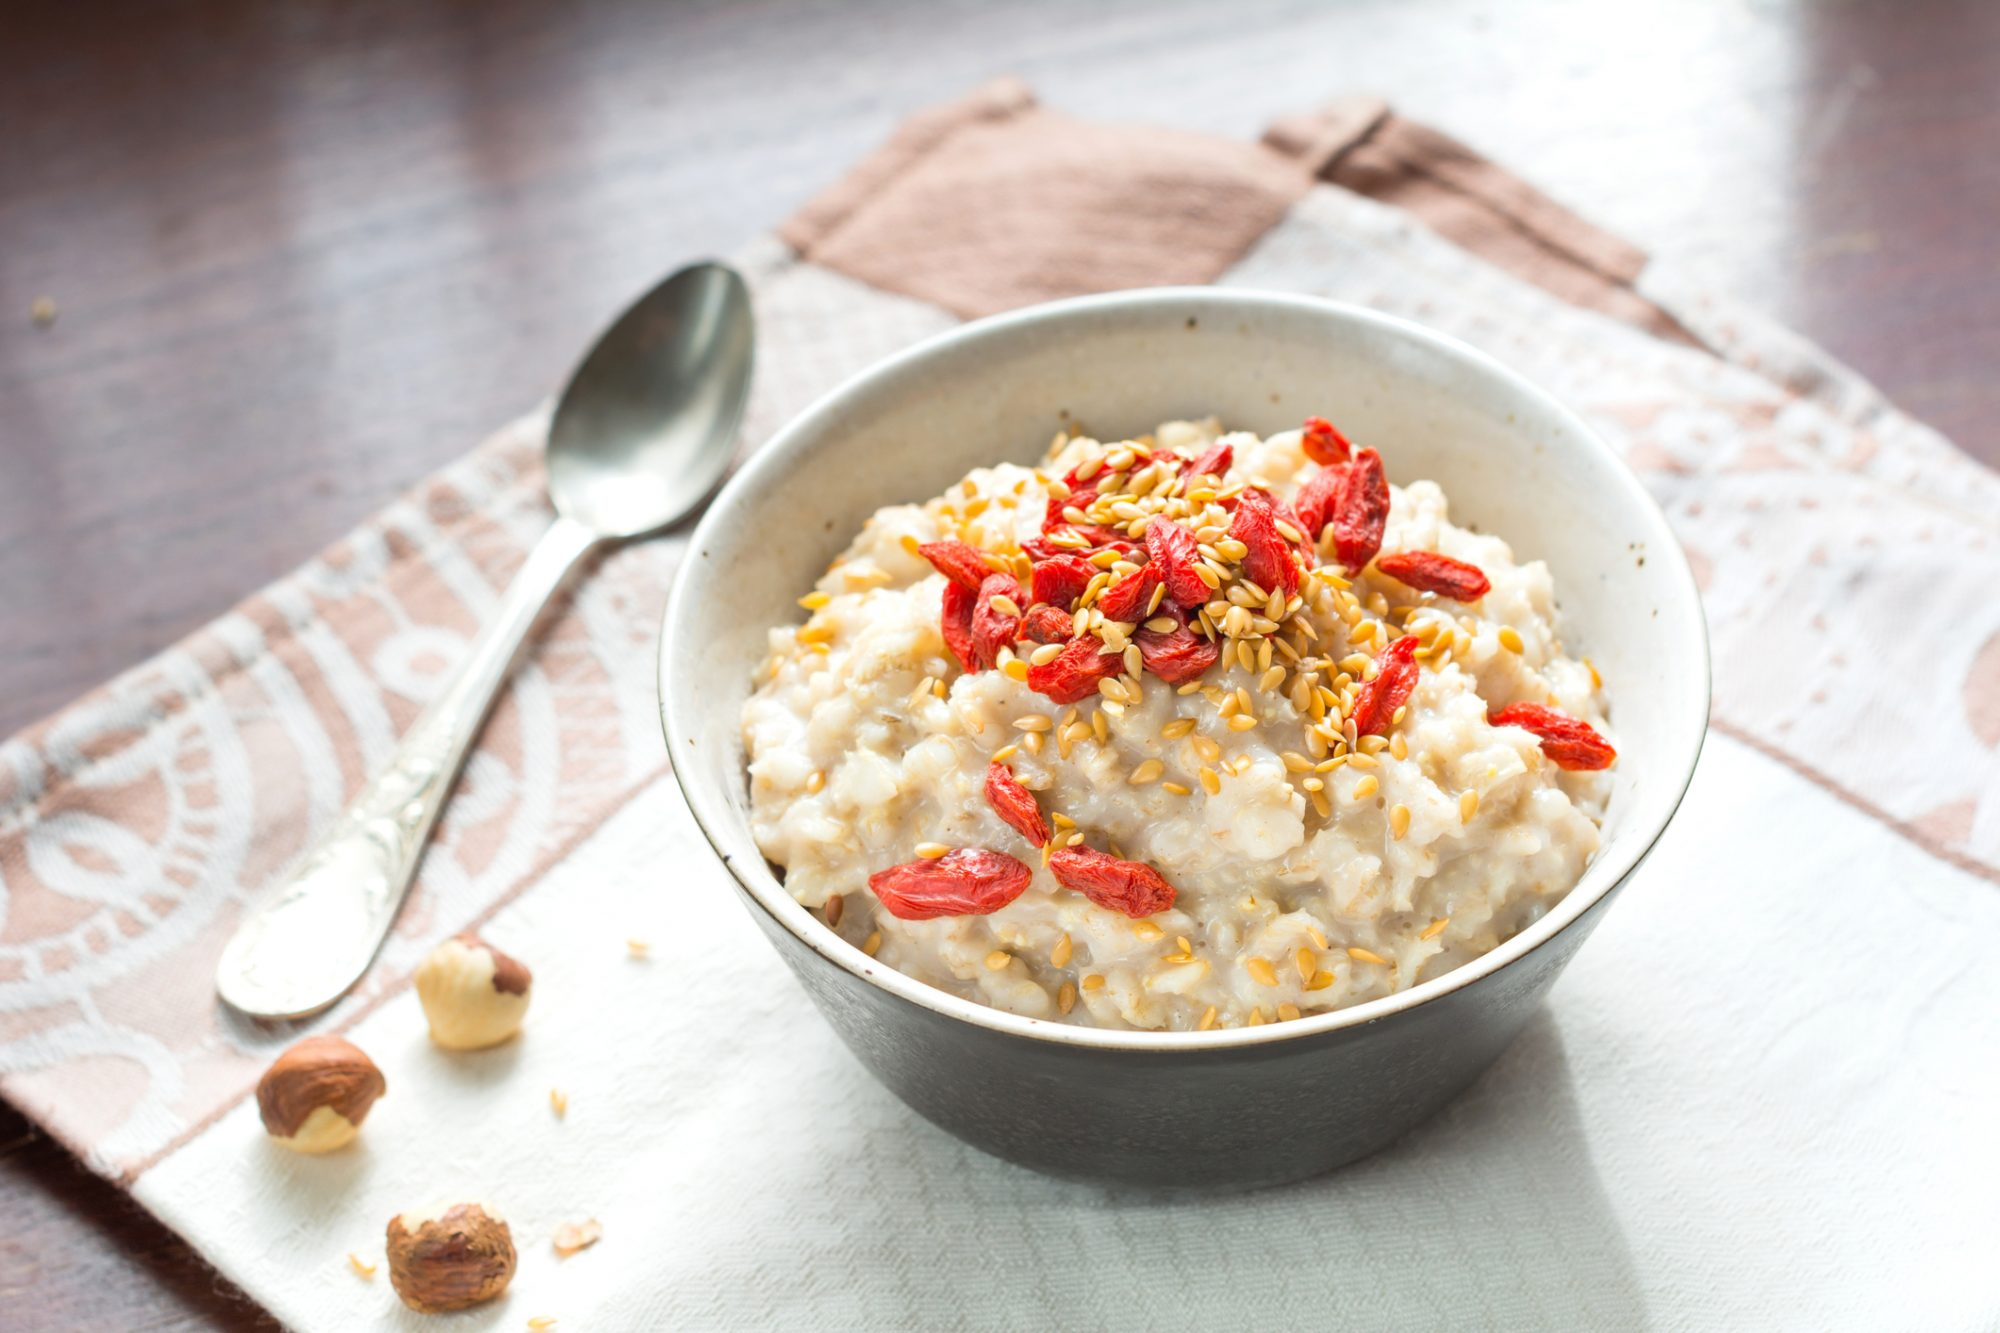 EC: 7 Ways to Spice Up Your Oatmeal That Aren't Boring